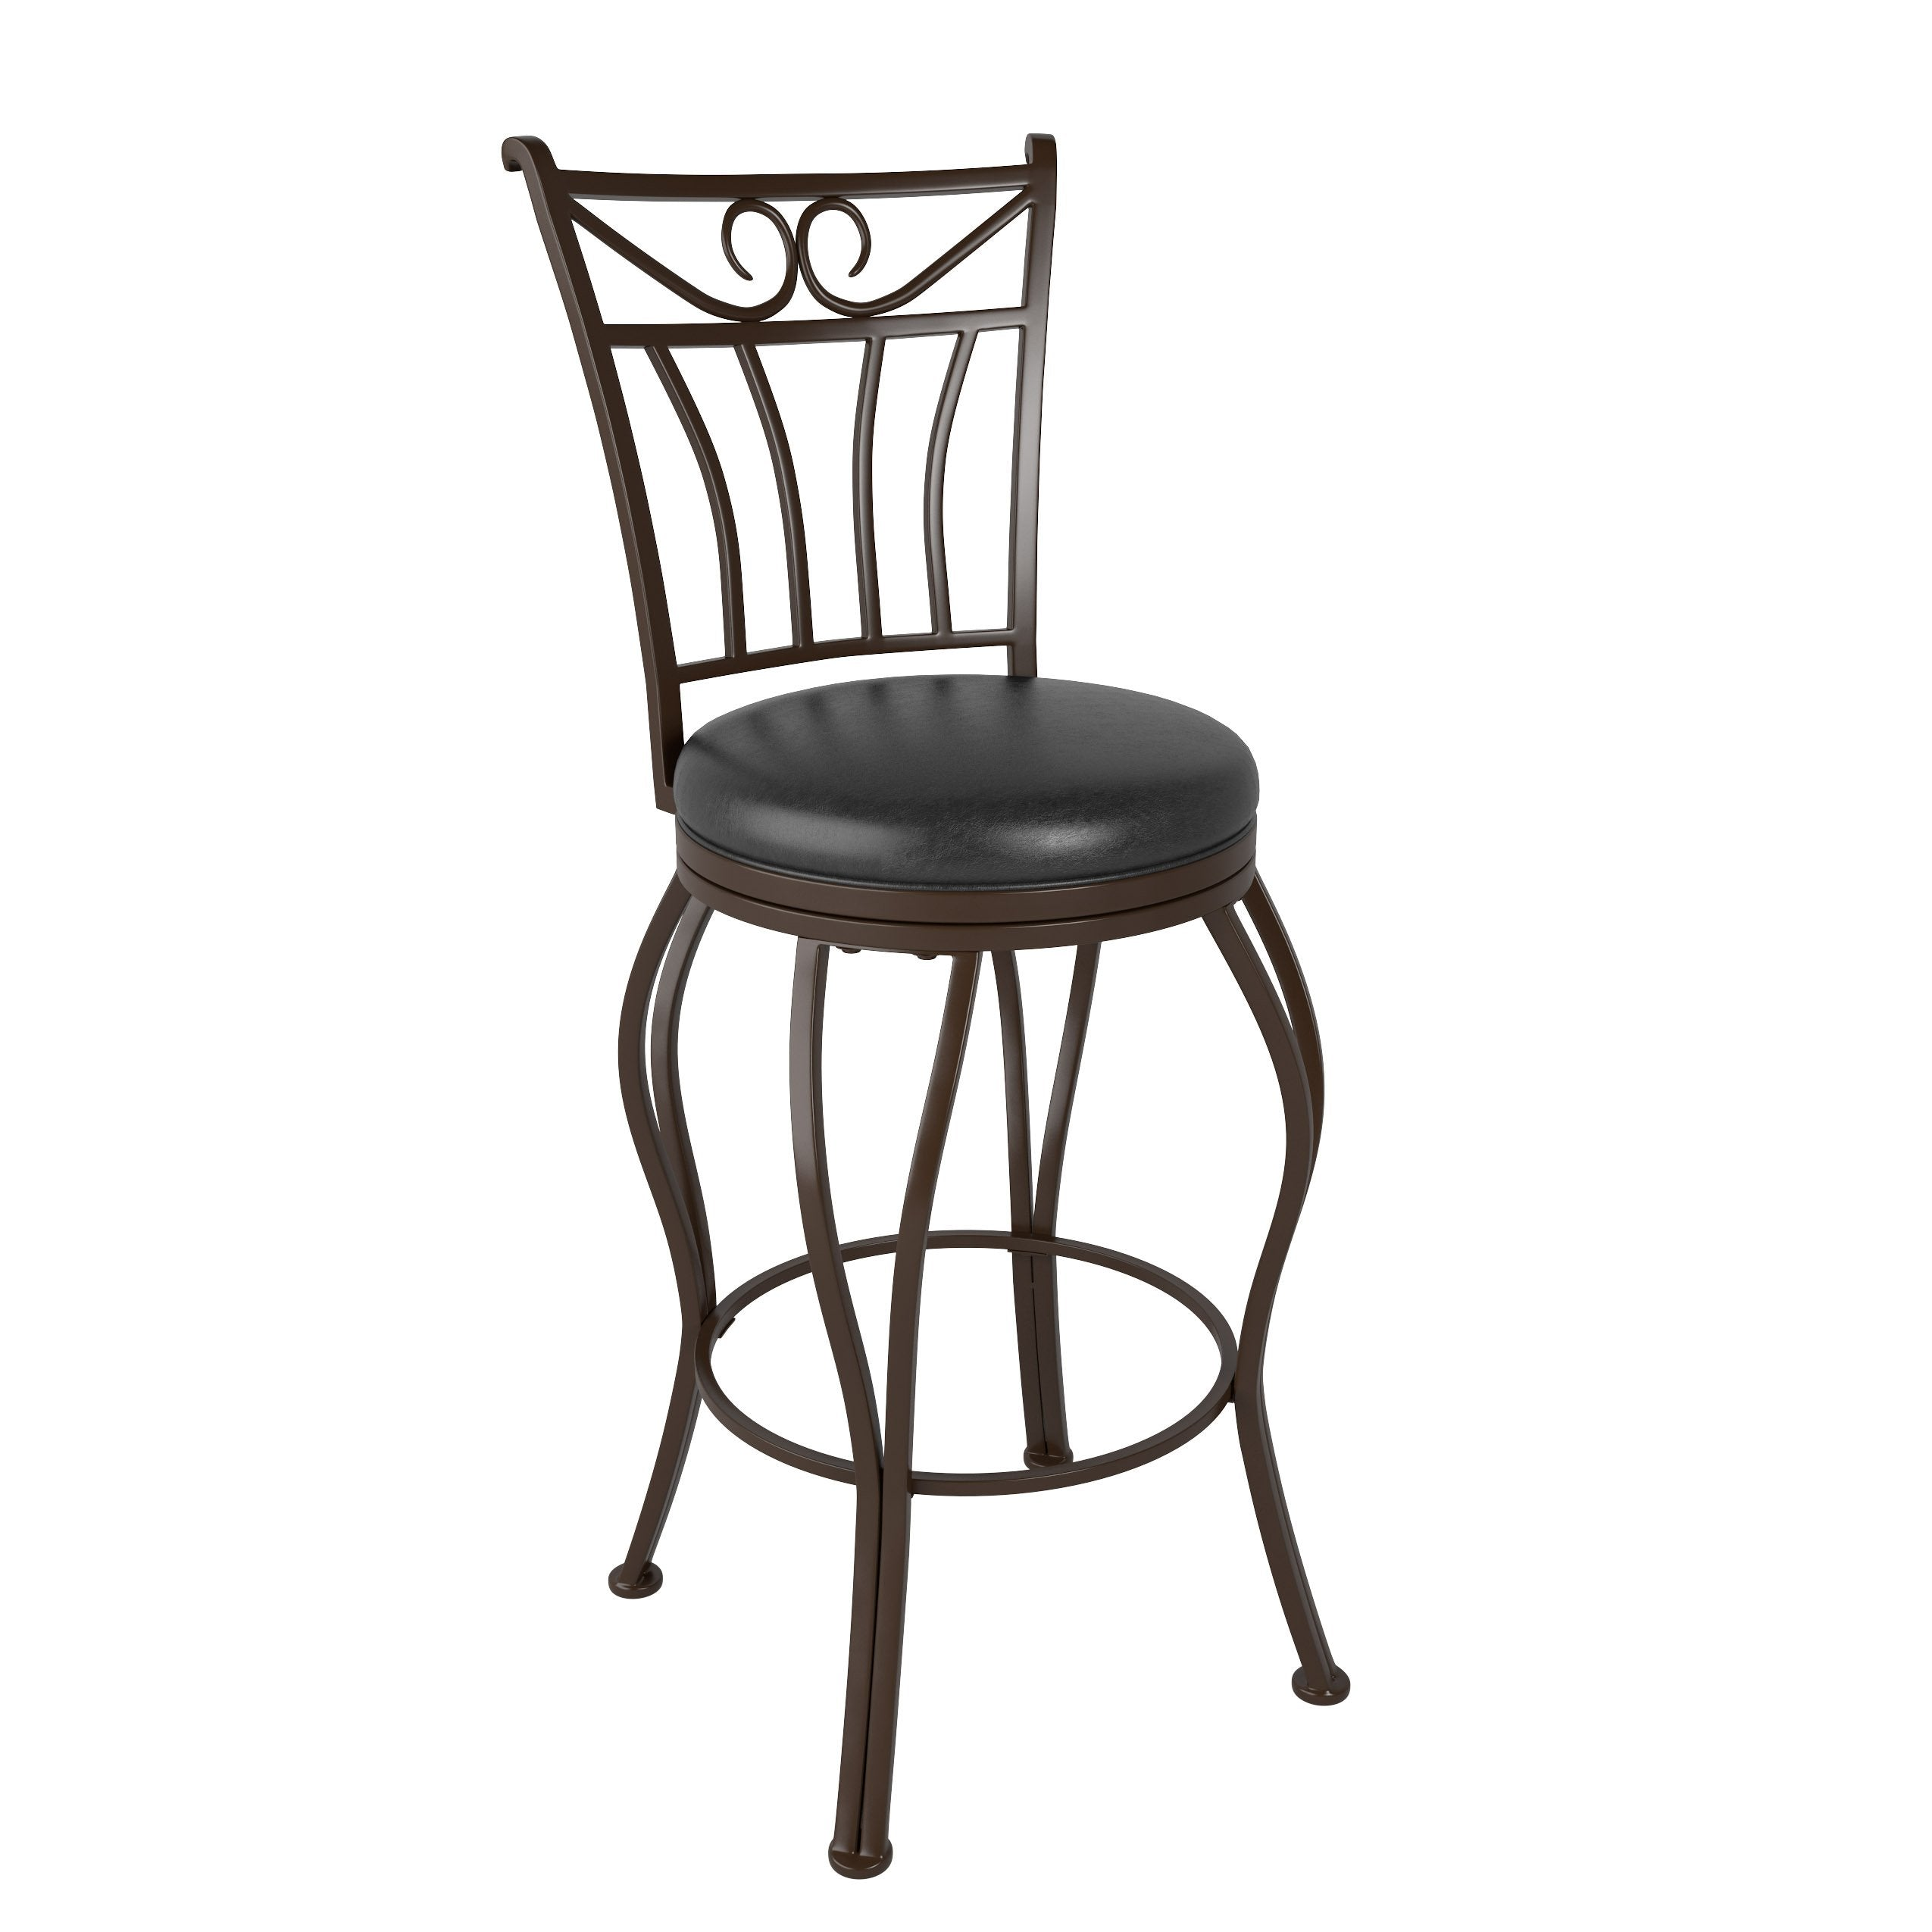 Tremendous Metal Counter Height Bar Stool With Swivel Glossy Dark Brown Leather Seat Clearance Cjindustries Chair Design For Home Cjindustriesco